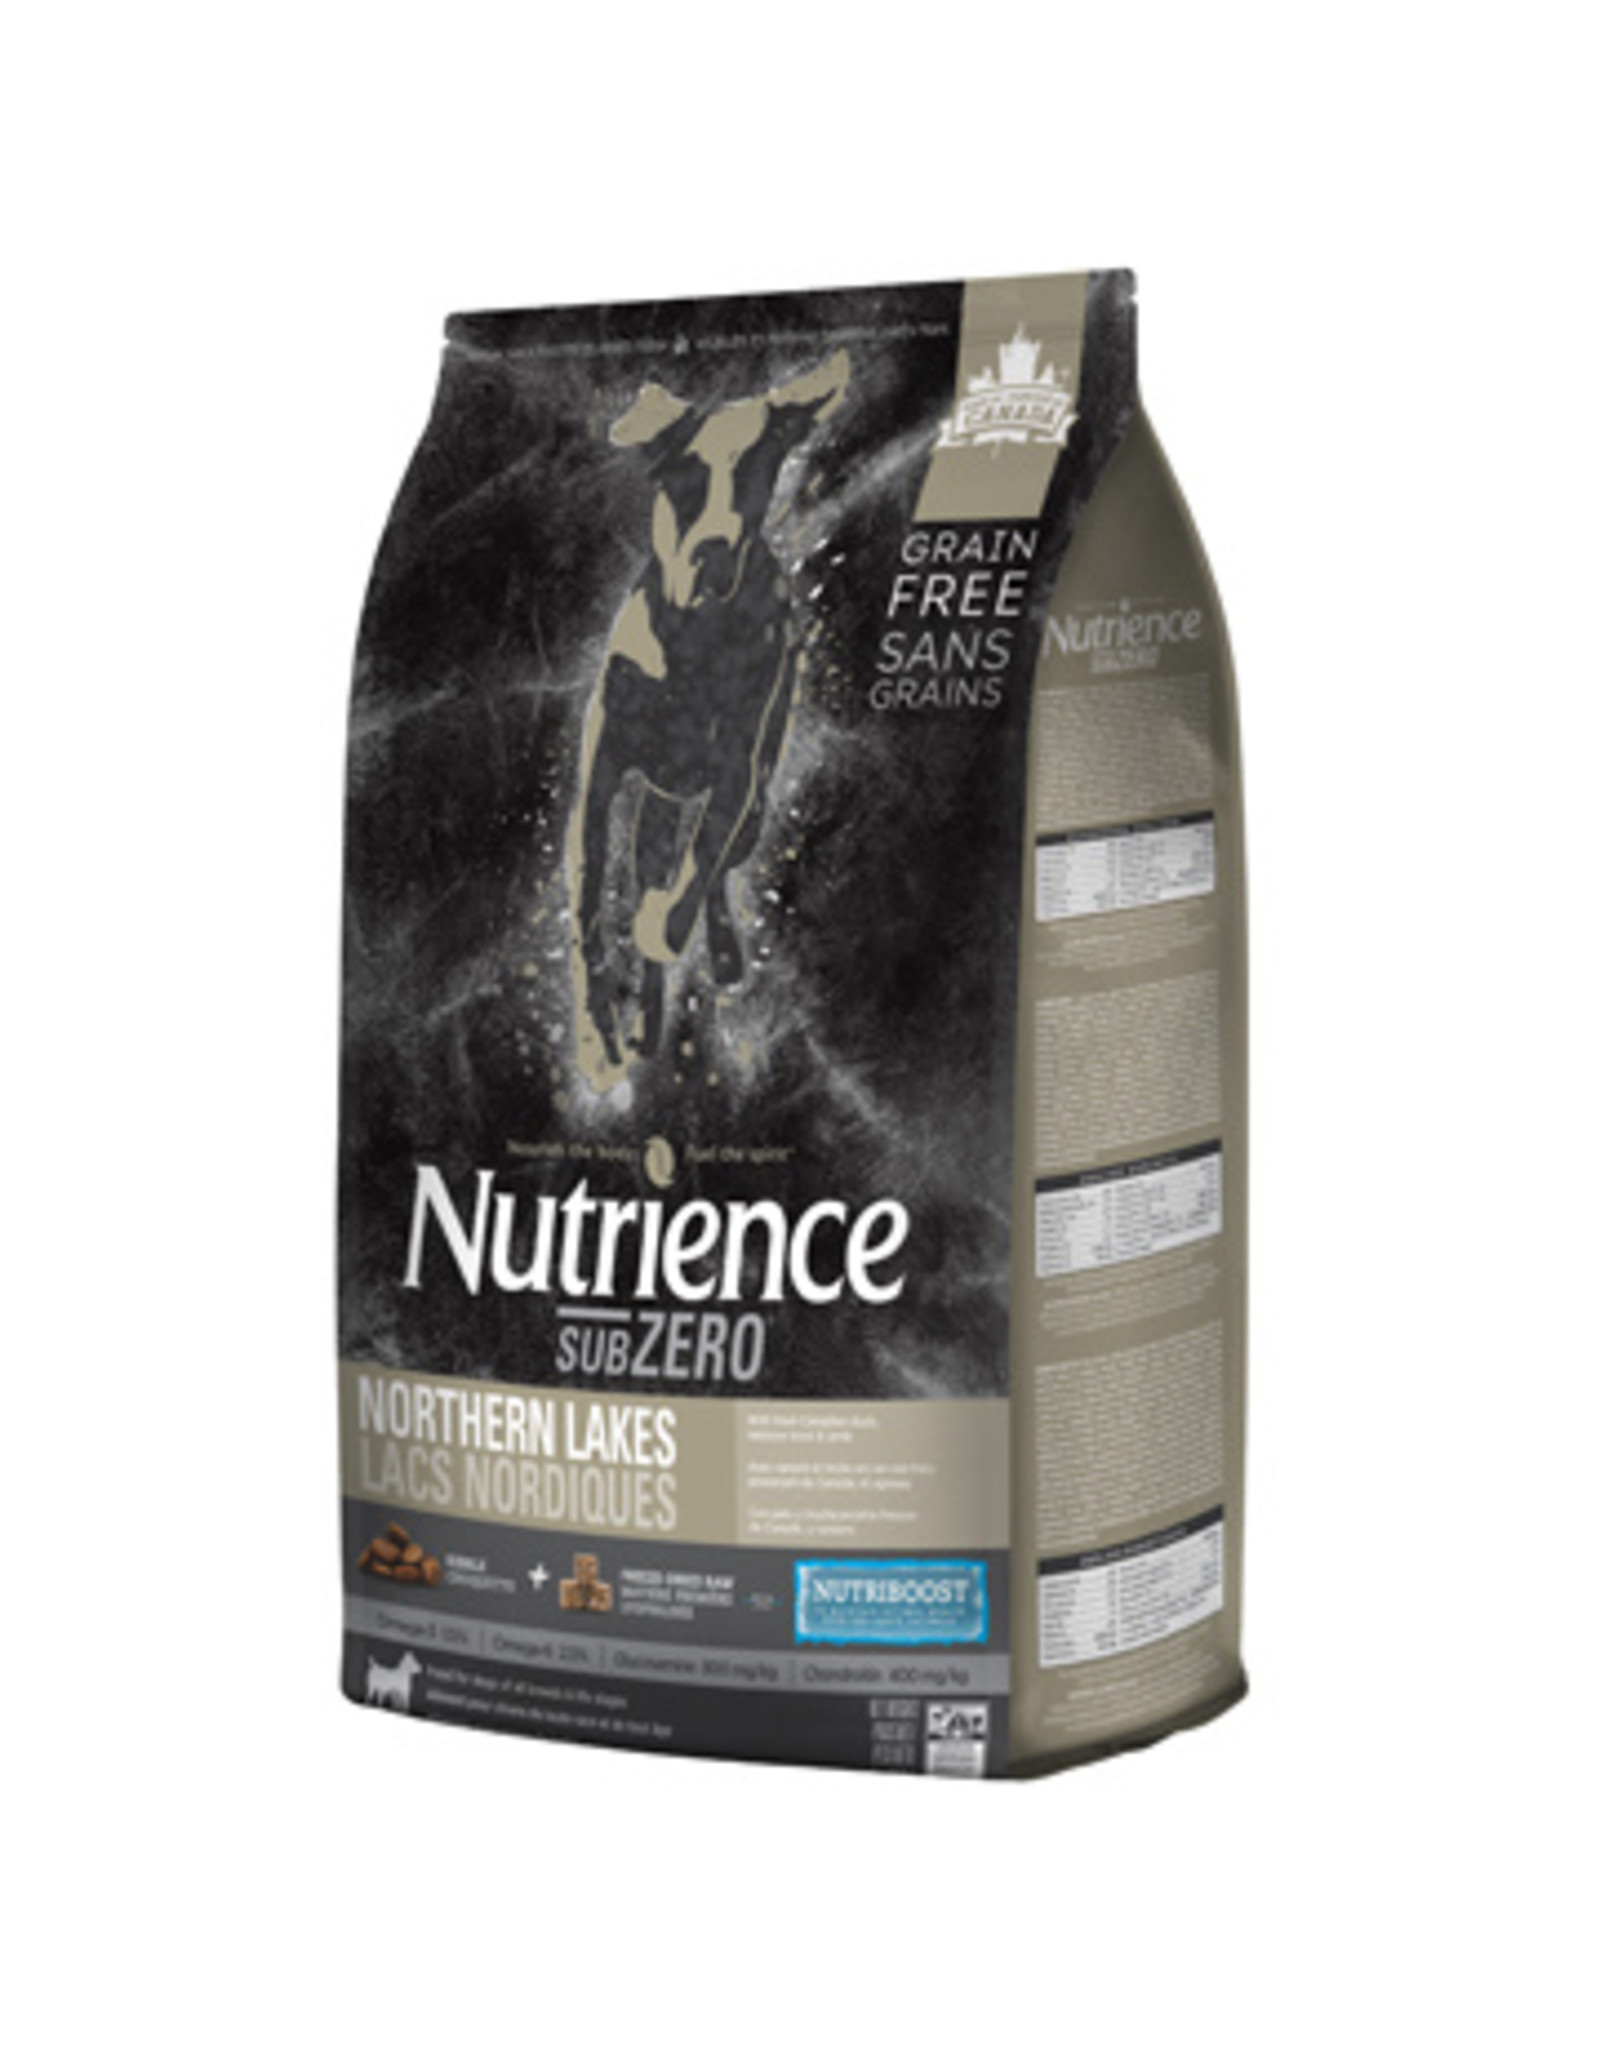 Nutrience Nutrience Grain Free Subzero Northern Lakes Dry Dog Wood